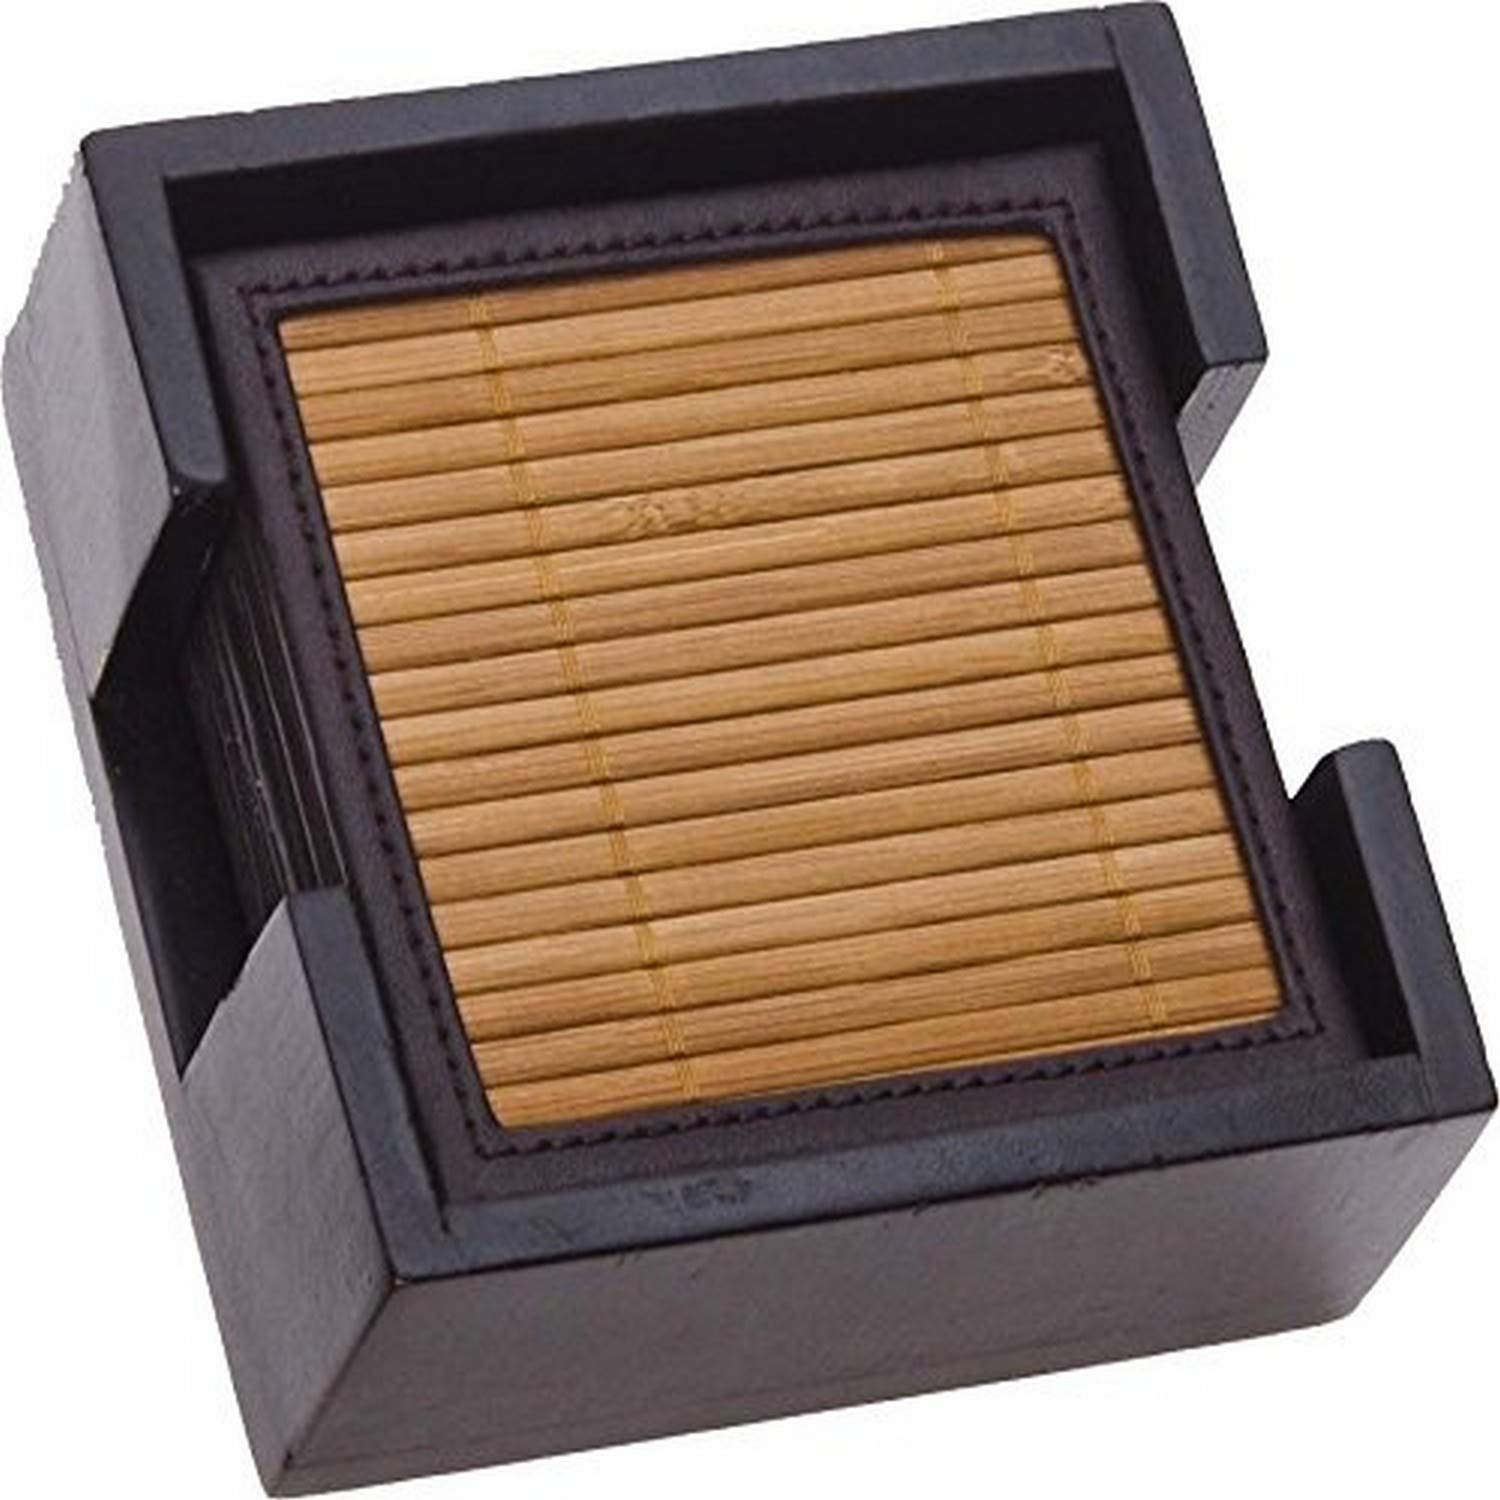 Thirstystone bamboo and faux leather ambiance coasters